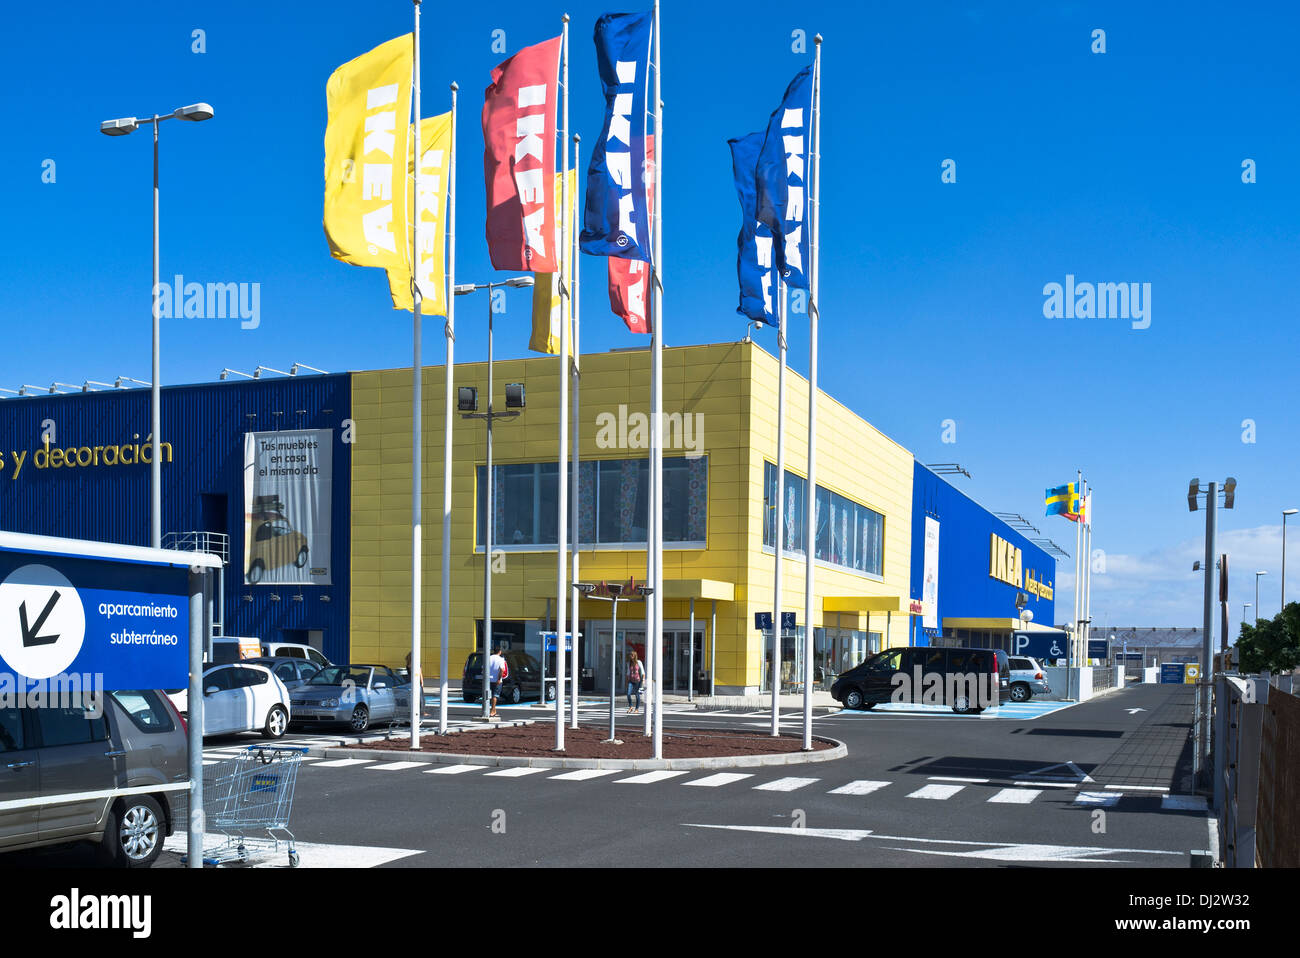 Sofas Ikea Lanzarote Ikea Car Park Stock Photos Ikea Car Park Stock Images Alamy